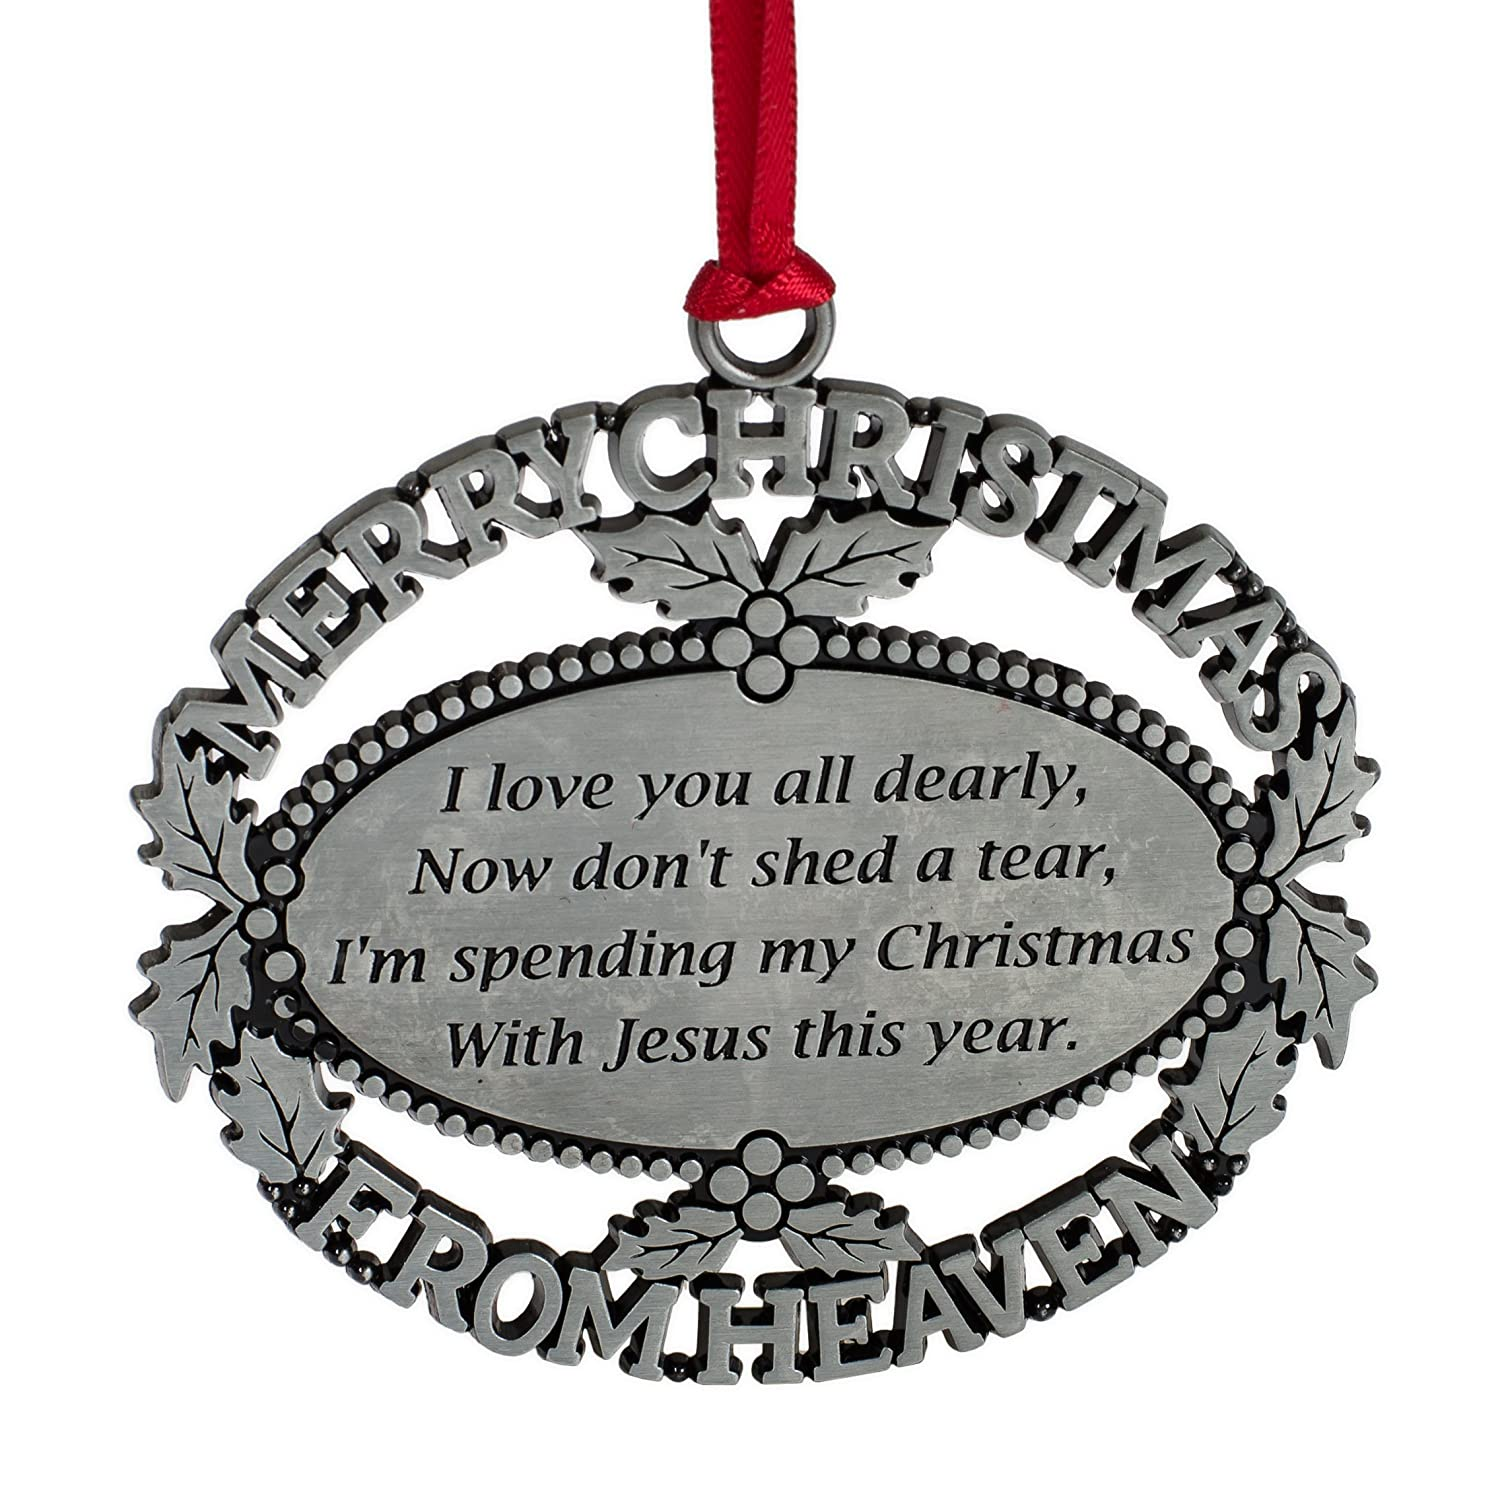 Christmas In Heaven Ornament.Merry Christmas From Heaven Pewter Finish Keepsake Memorial Ornament With Poem In Gift Box